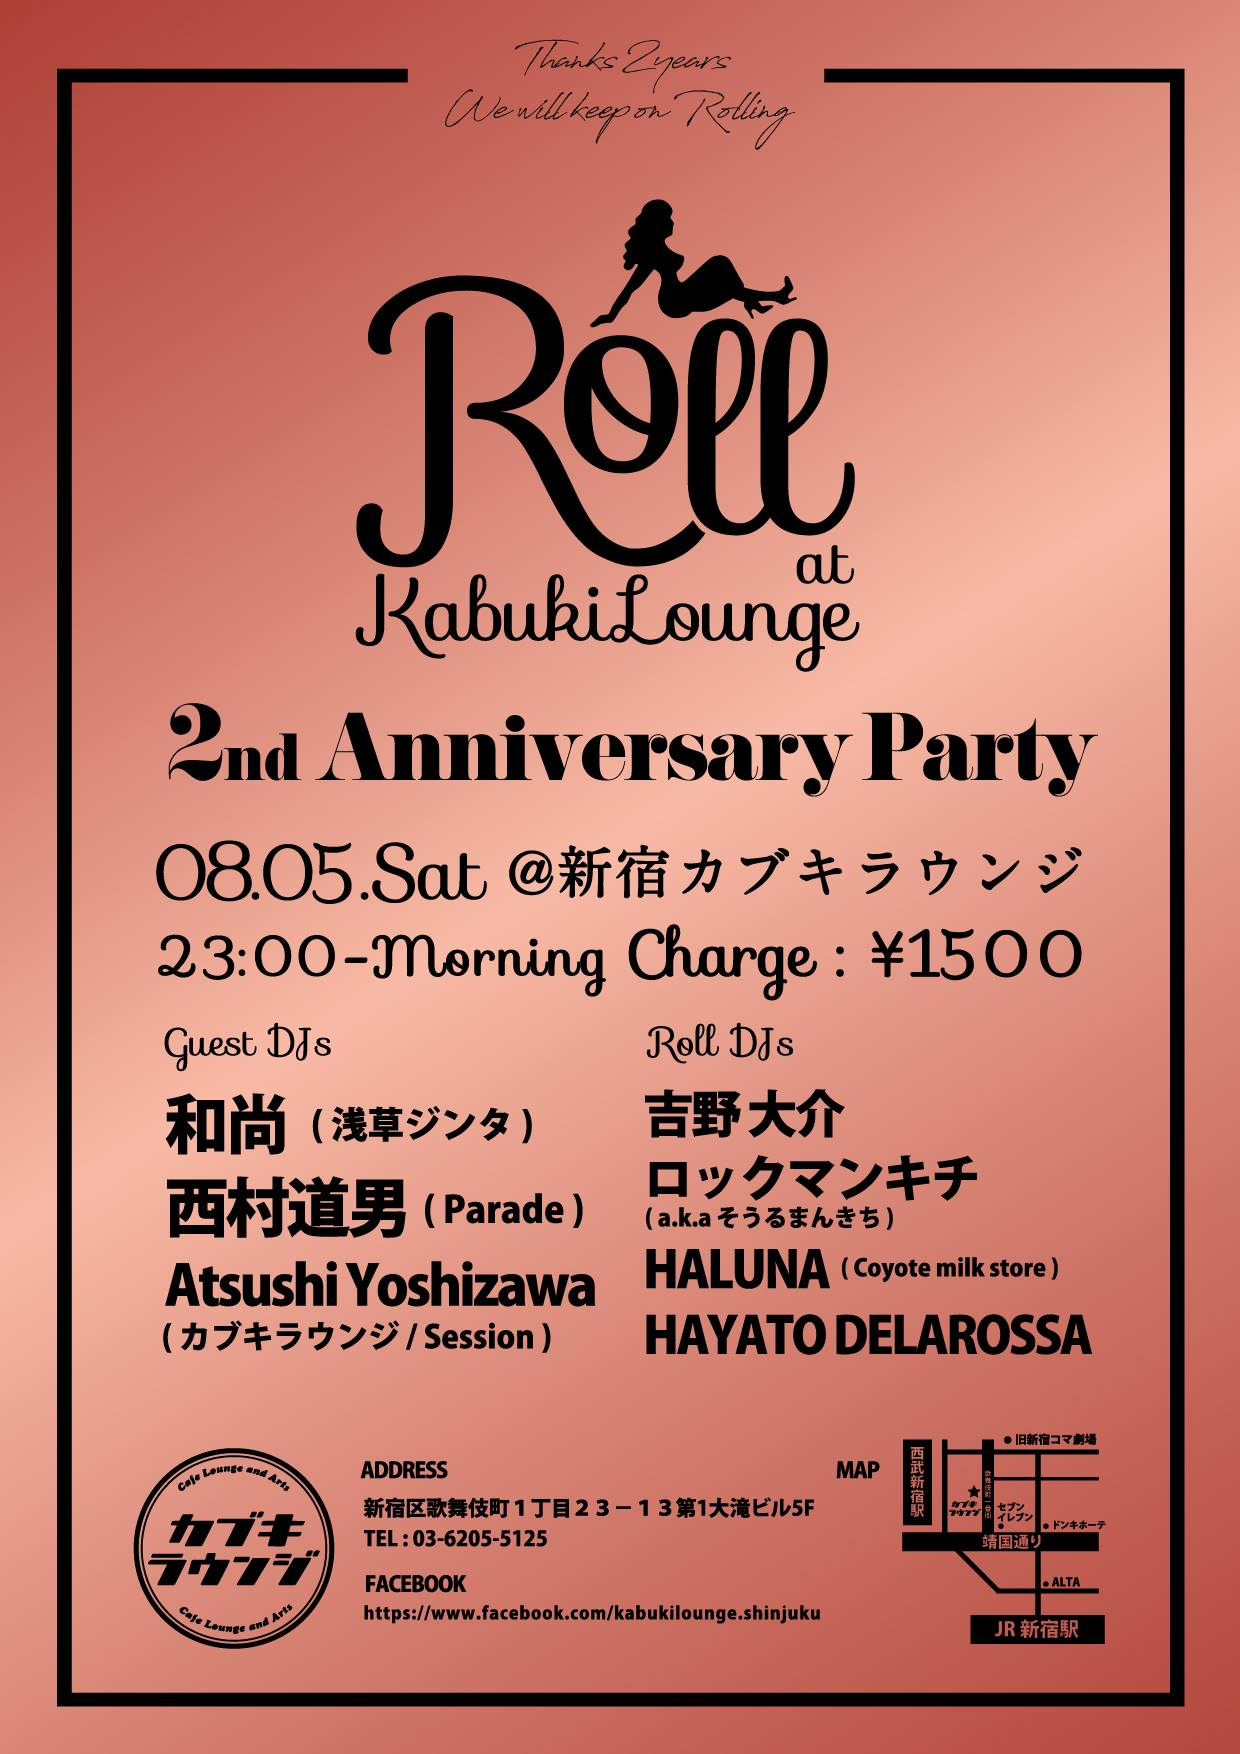 08.05.Sat Roll 2nd Anniversary Party @ 新宿カブキラウンジ